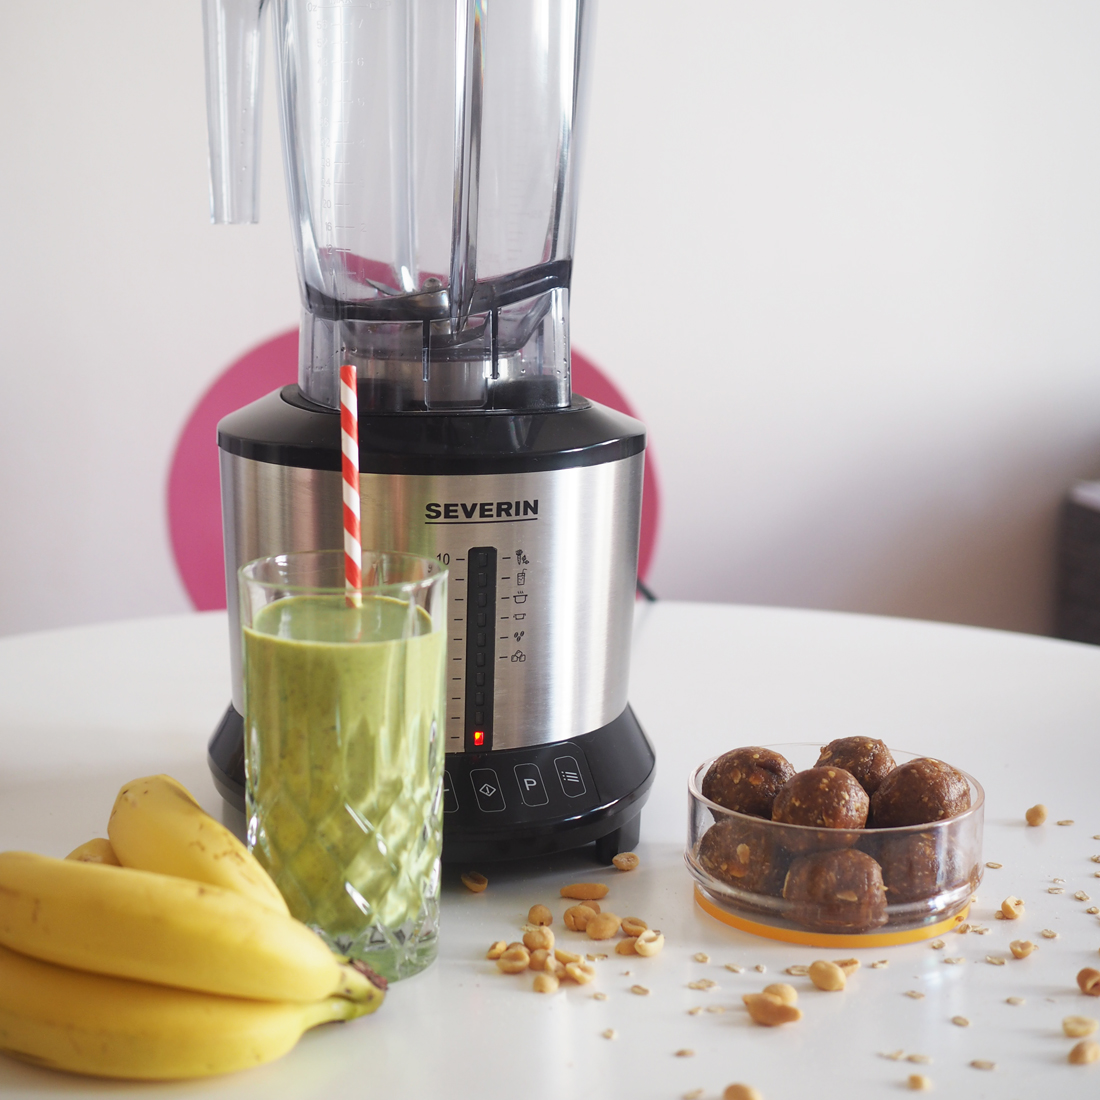 Severin SM3740 mixer Frozen banana and peanut butter Smoothie and peanut butter energy balls preview